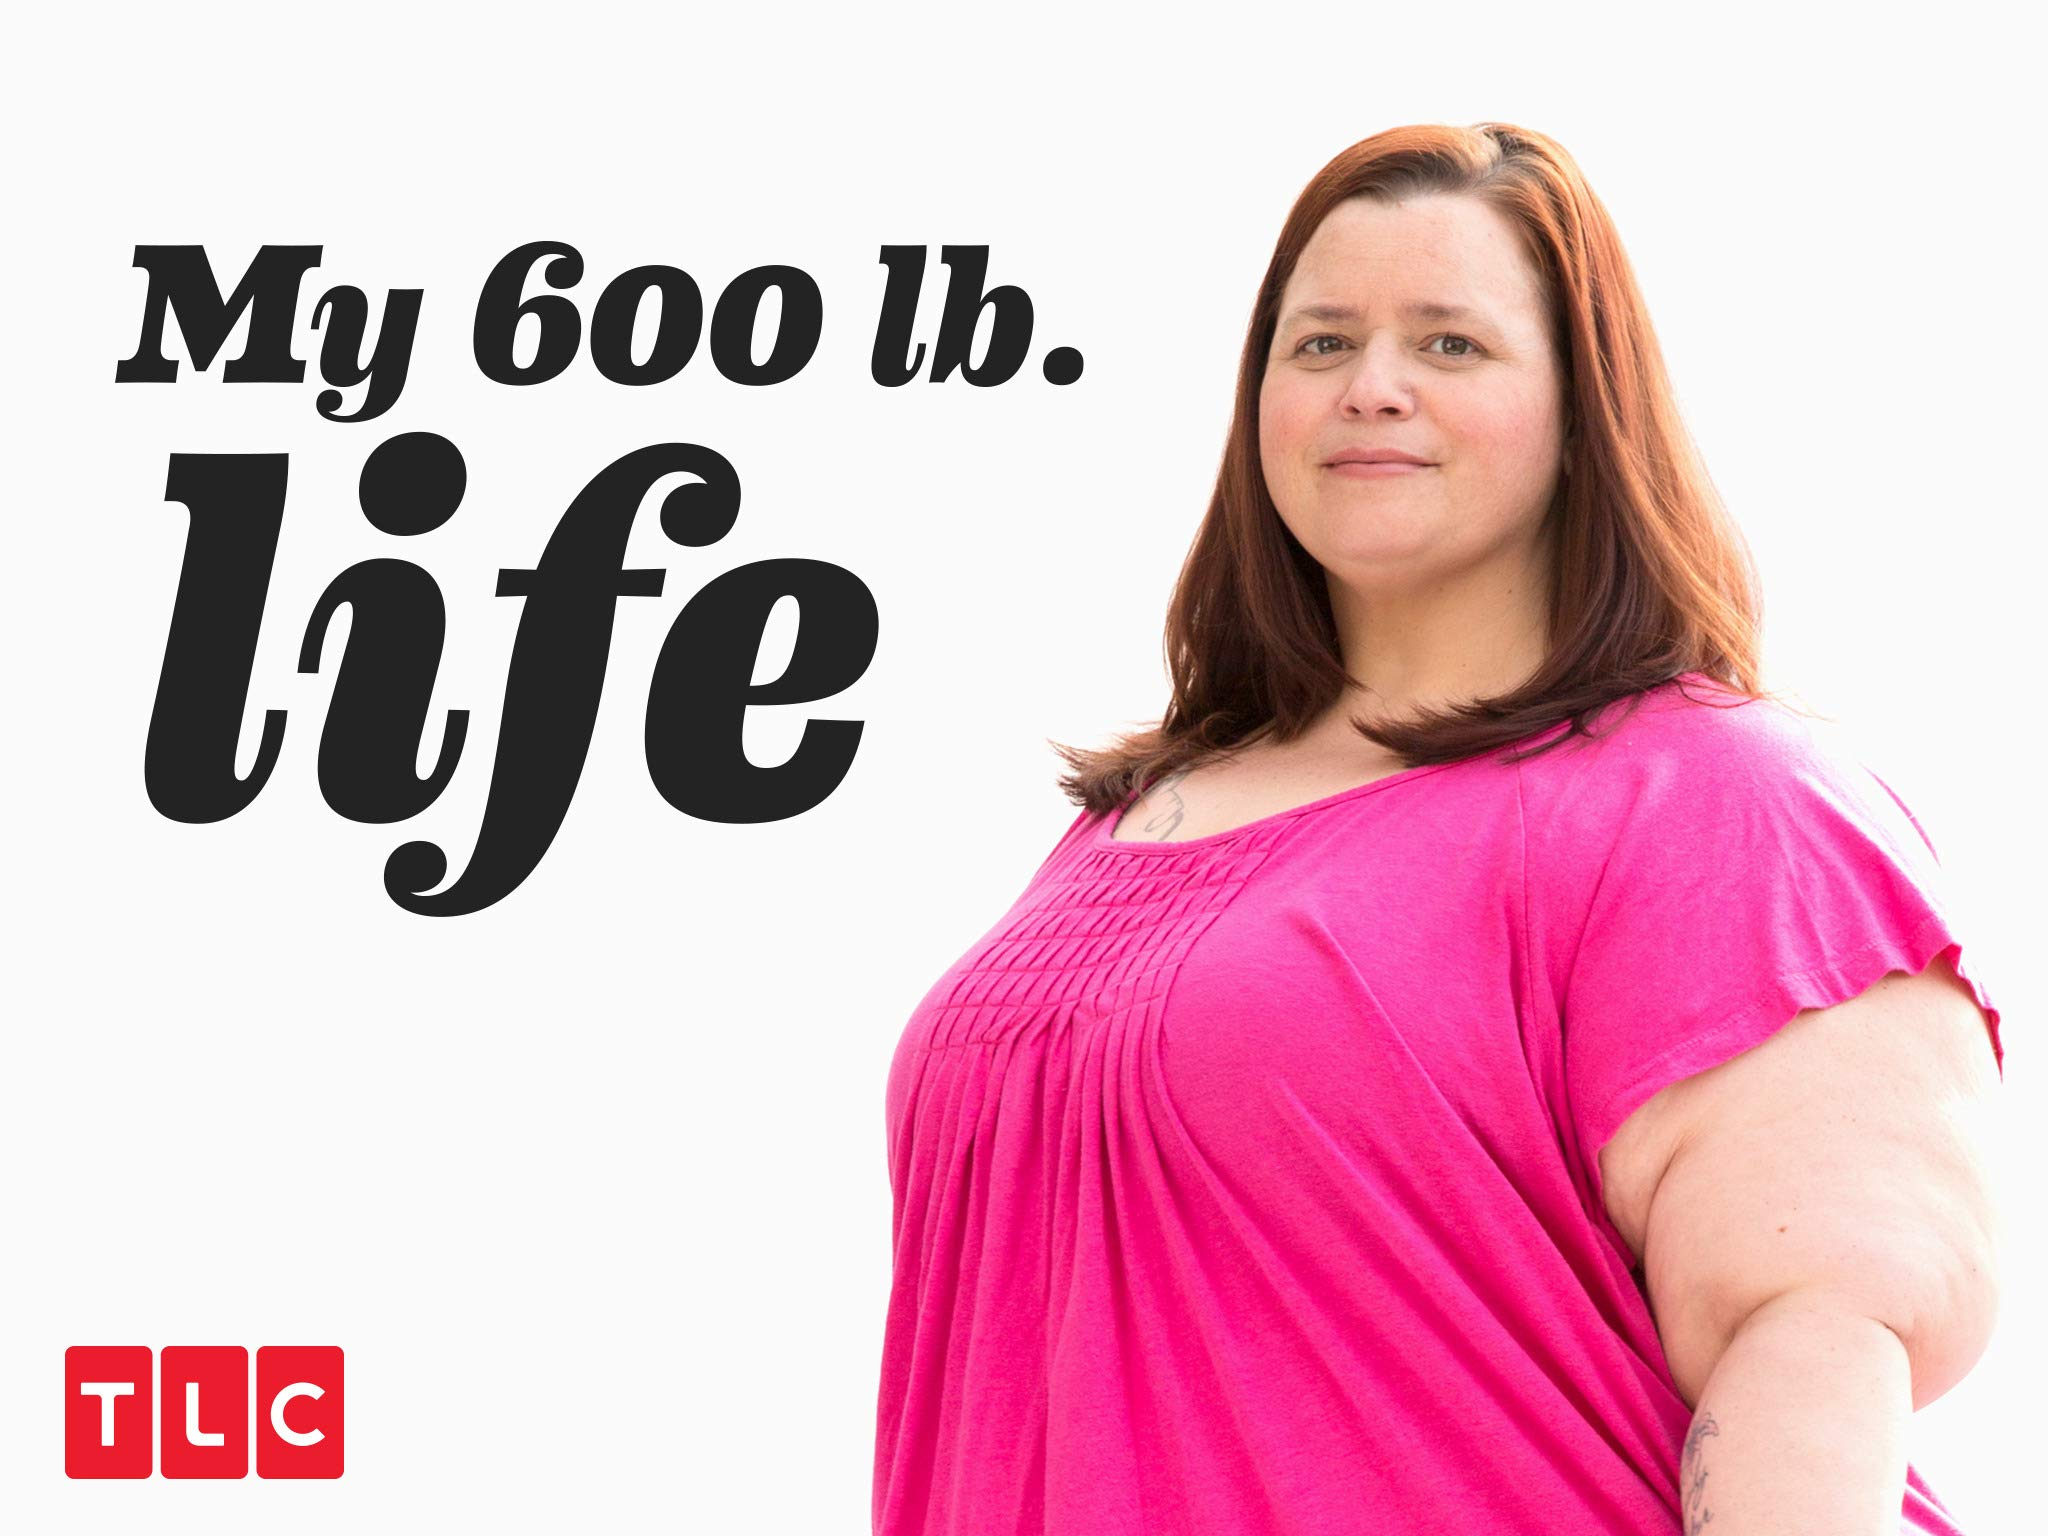 My 600 lb life kelly 2019